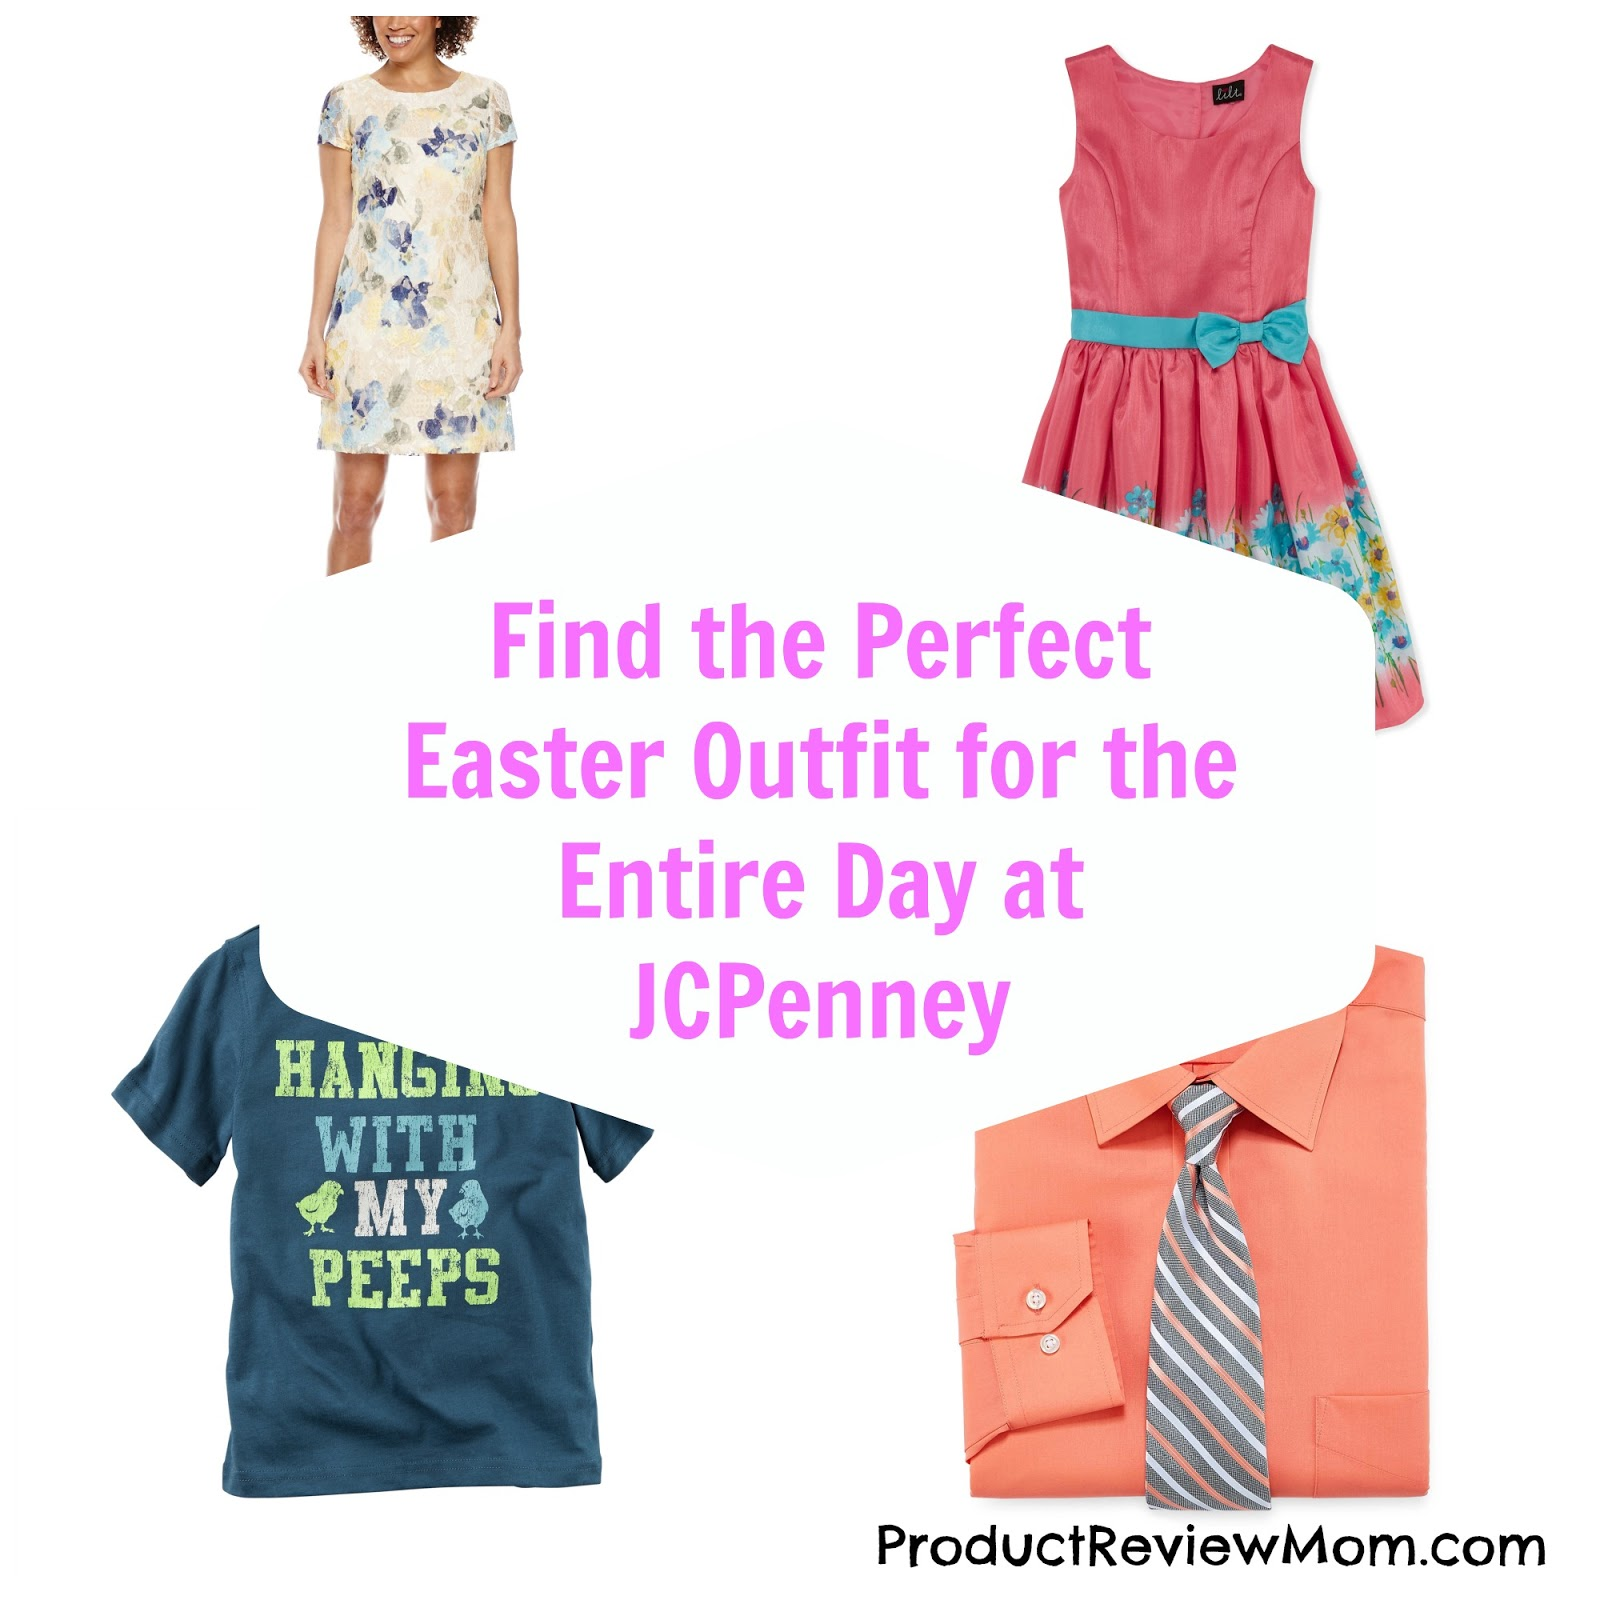 336e73b50d Find the Perfect Easter Outfit for the Entire Day at JCPenney